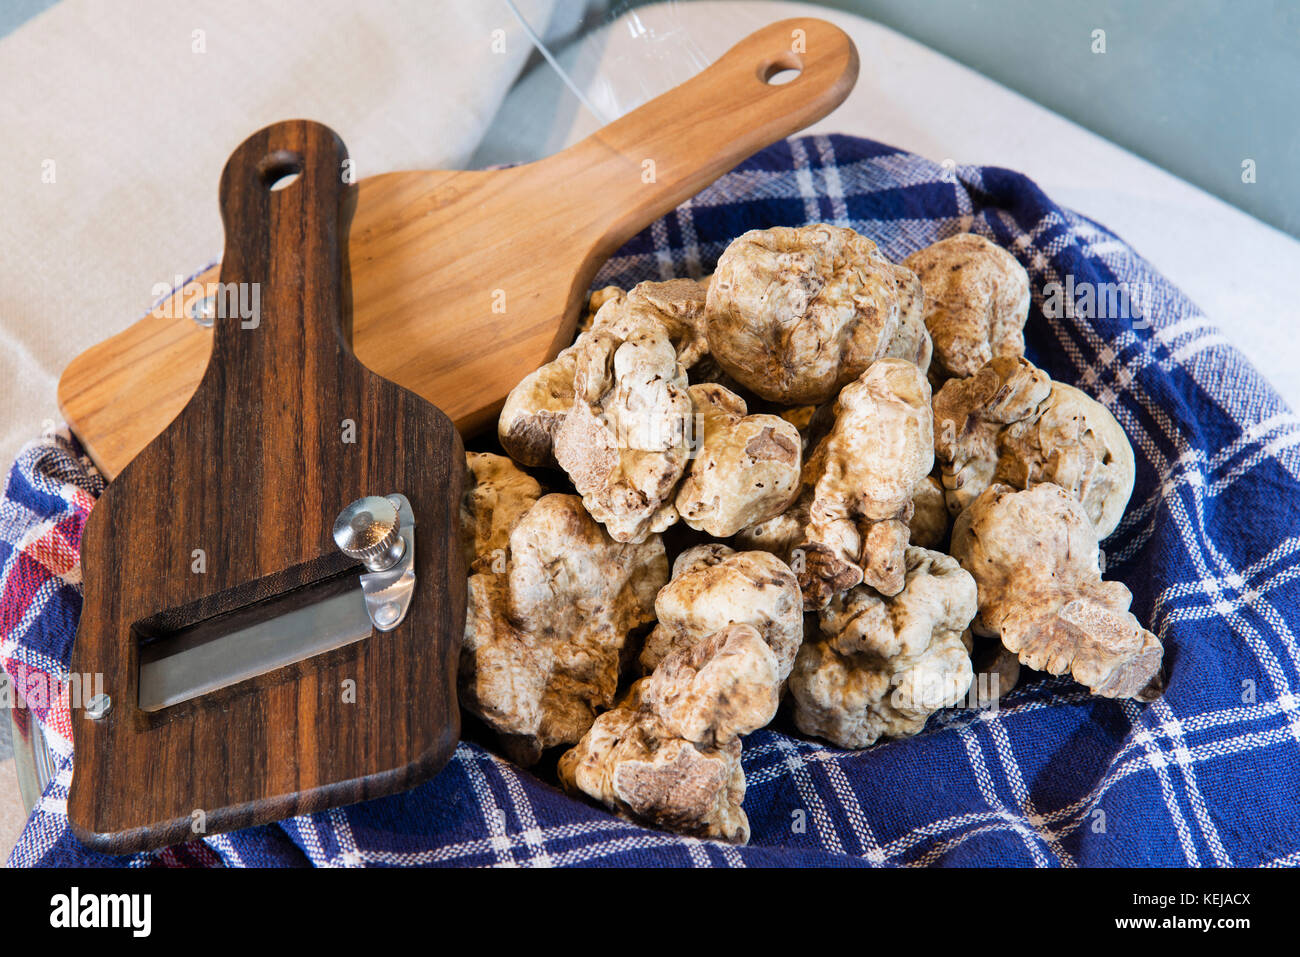 White truffles on the typical cloth trunk, with truffle cut in wood, from the Langhe Alba in Piedmont Italy. - Stock Image